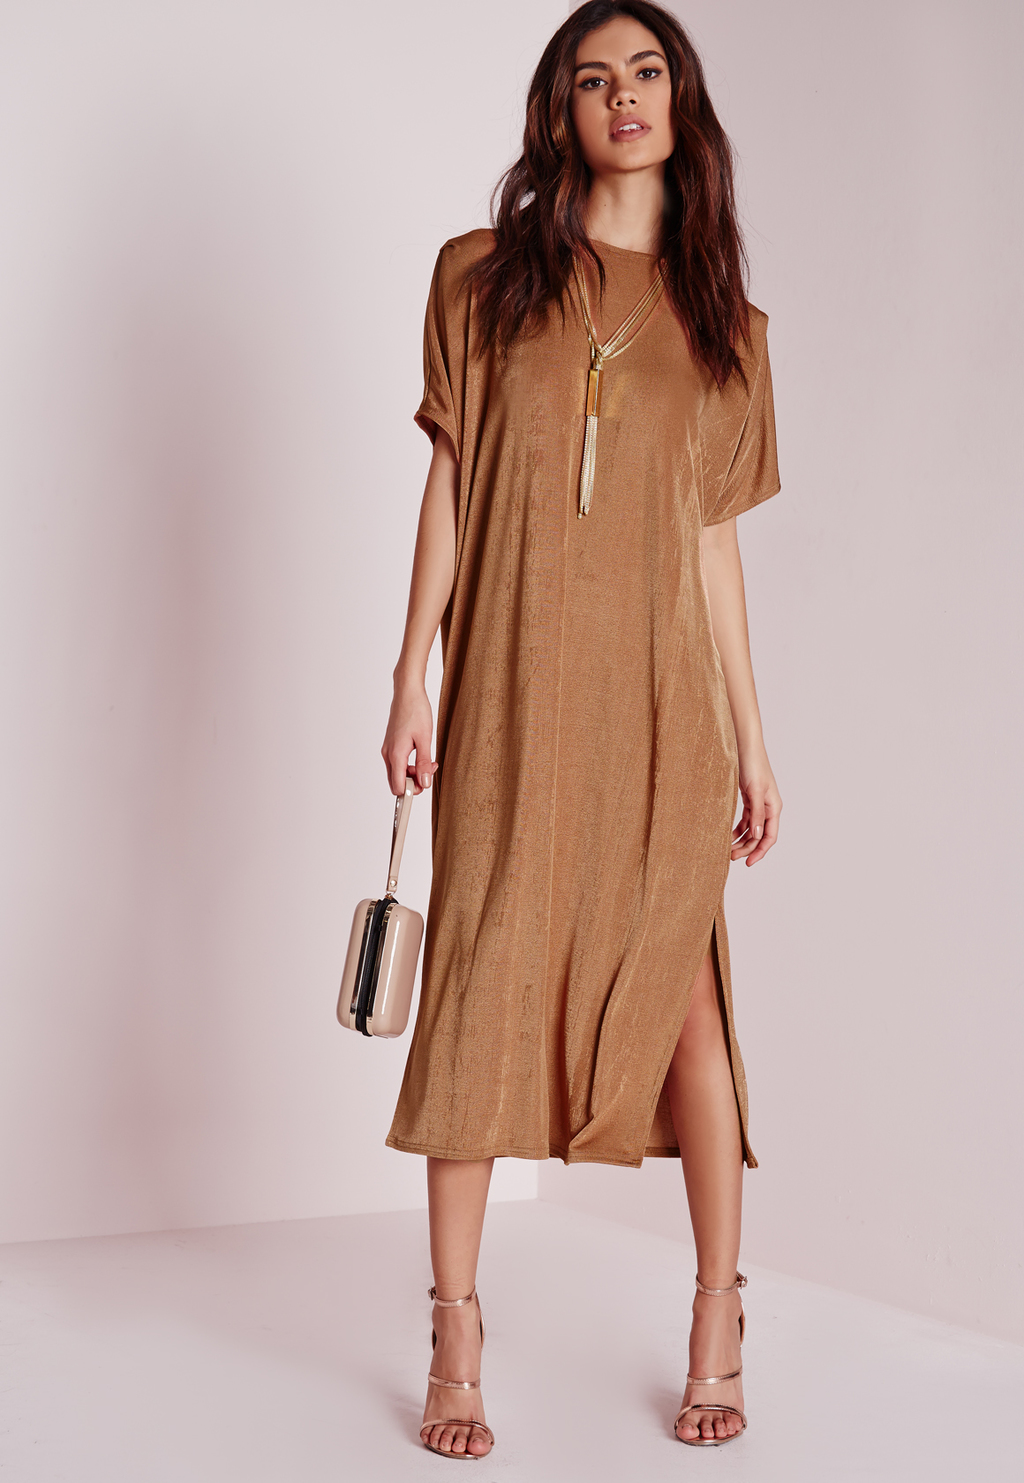 Oversized Midi T Shirt Dress Bronze, Bronze - style: t-shirt; length: below the knee; pattern: plain; predominant colour: bronze; occasions: evening; fit: body skimming; fibres: polyester/polyamide - stretch; neckline: crew; hip detail: slits at hip; sleeve length: short sleeve; sleeve style: standard; pattern type: fabric; texture group: jersey - stretchy/drapey; season: s/s 2016; wardrobe: event